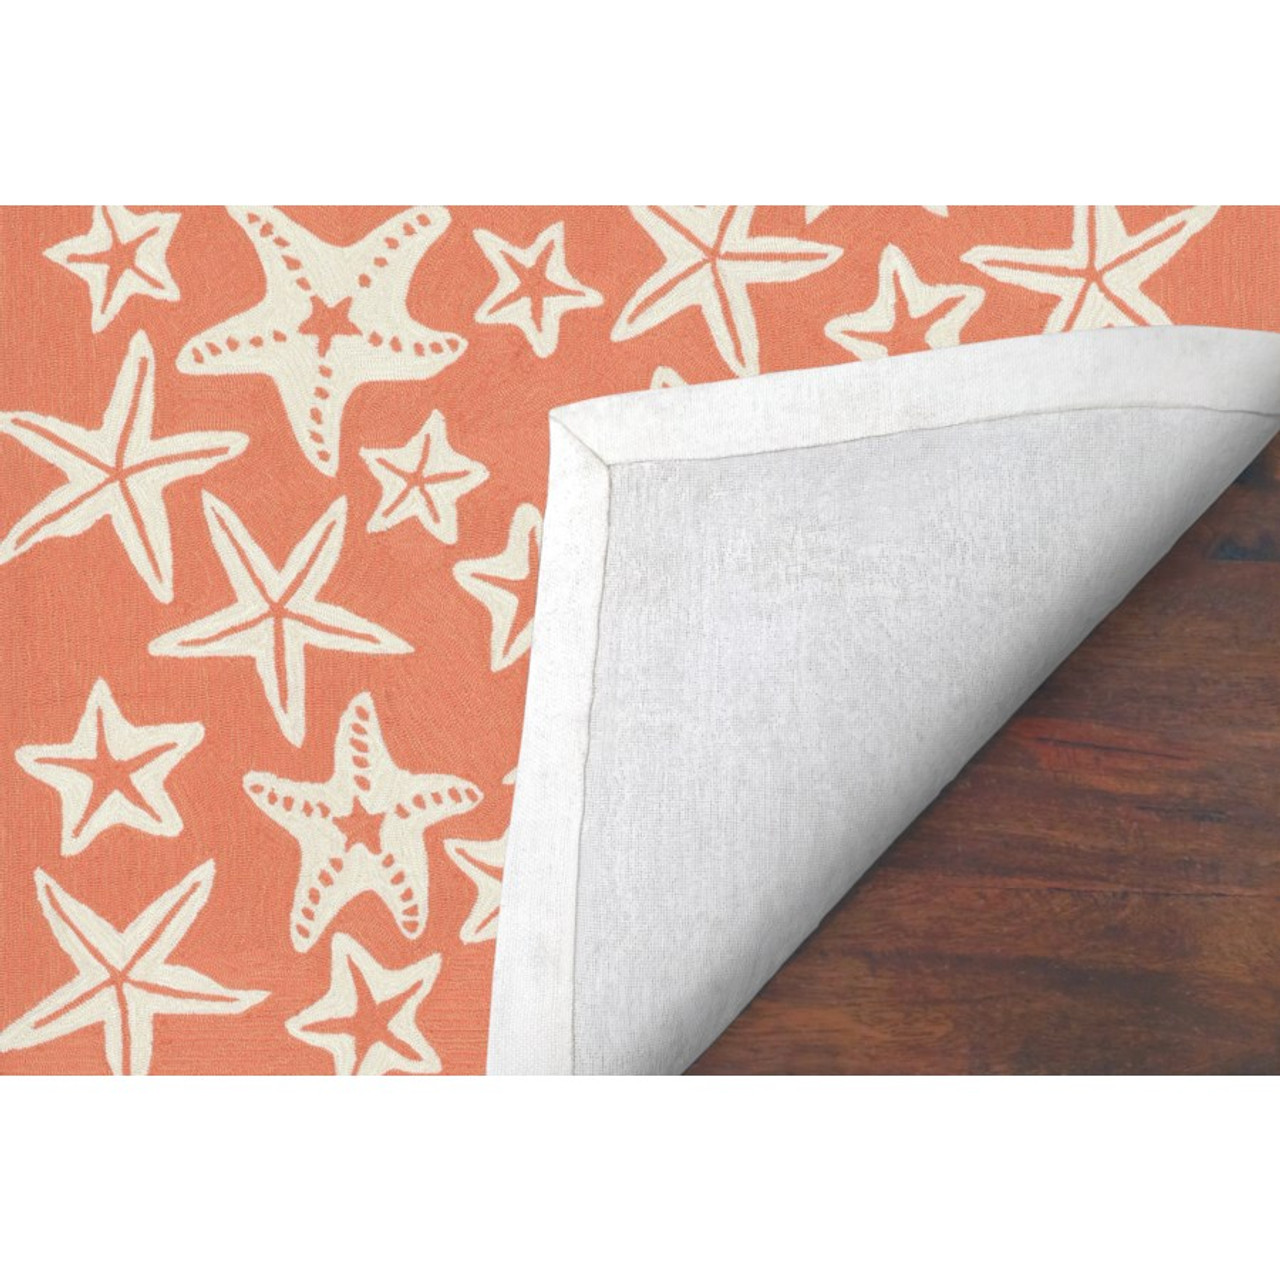 Coral Capri Starfish Indoor/Outdoor Rug - Backing